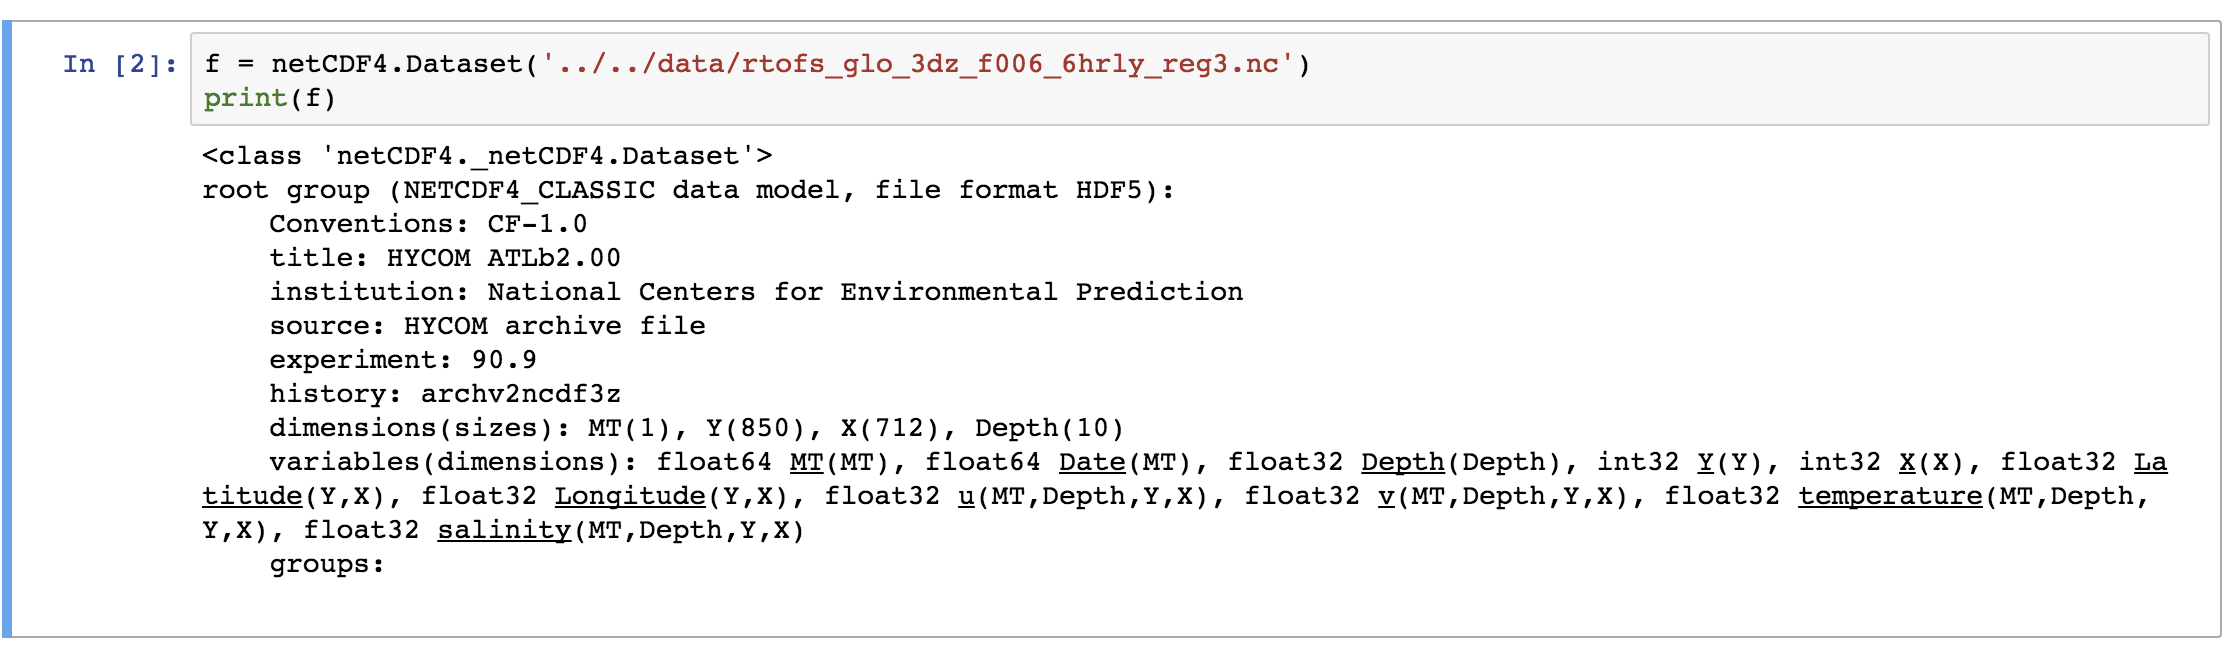 Reading NetCDF4 Data in Python - Institute of Earth Sciences Coders